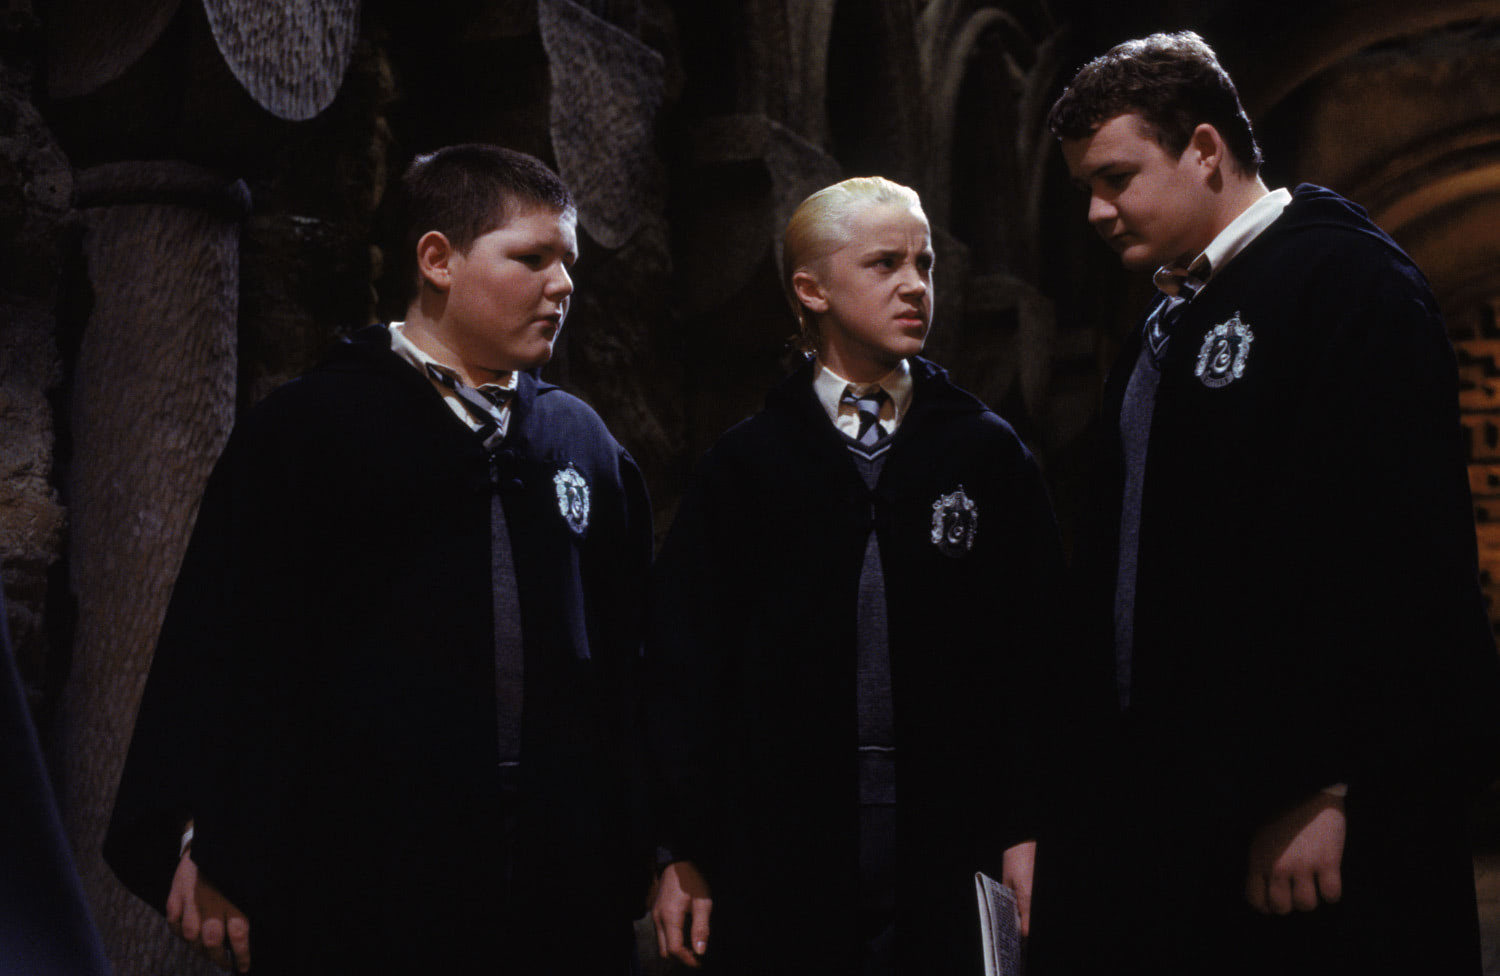 Crabbe, Malfoy and Goyle